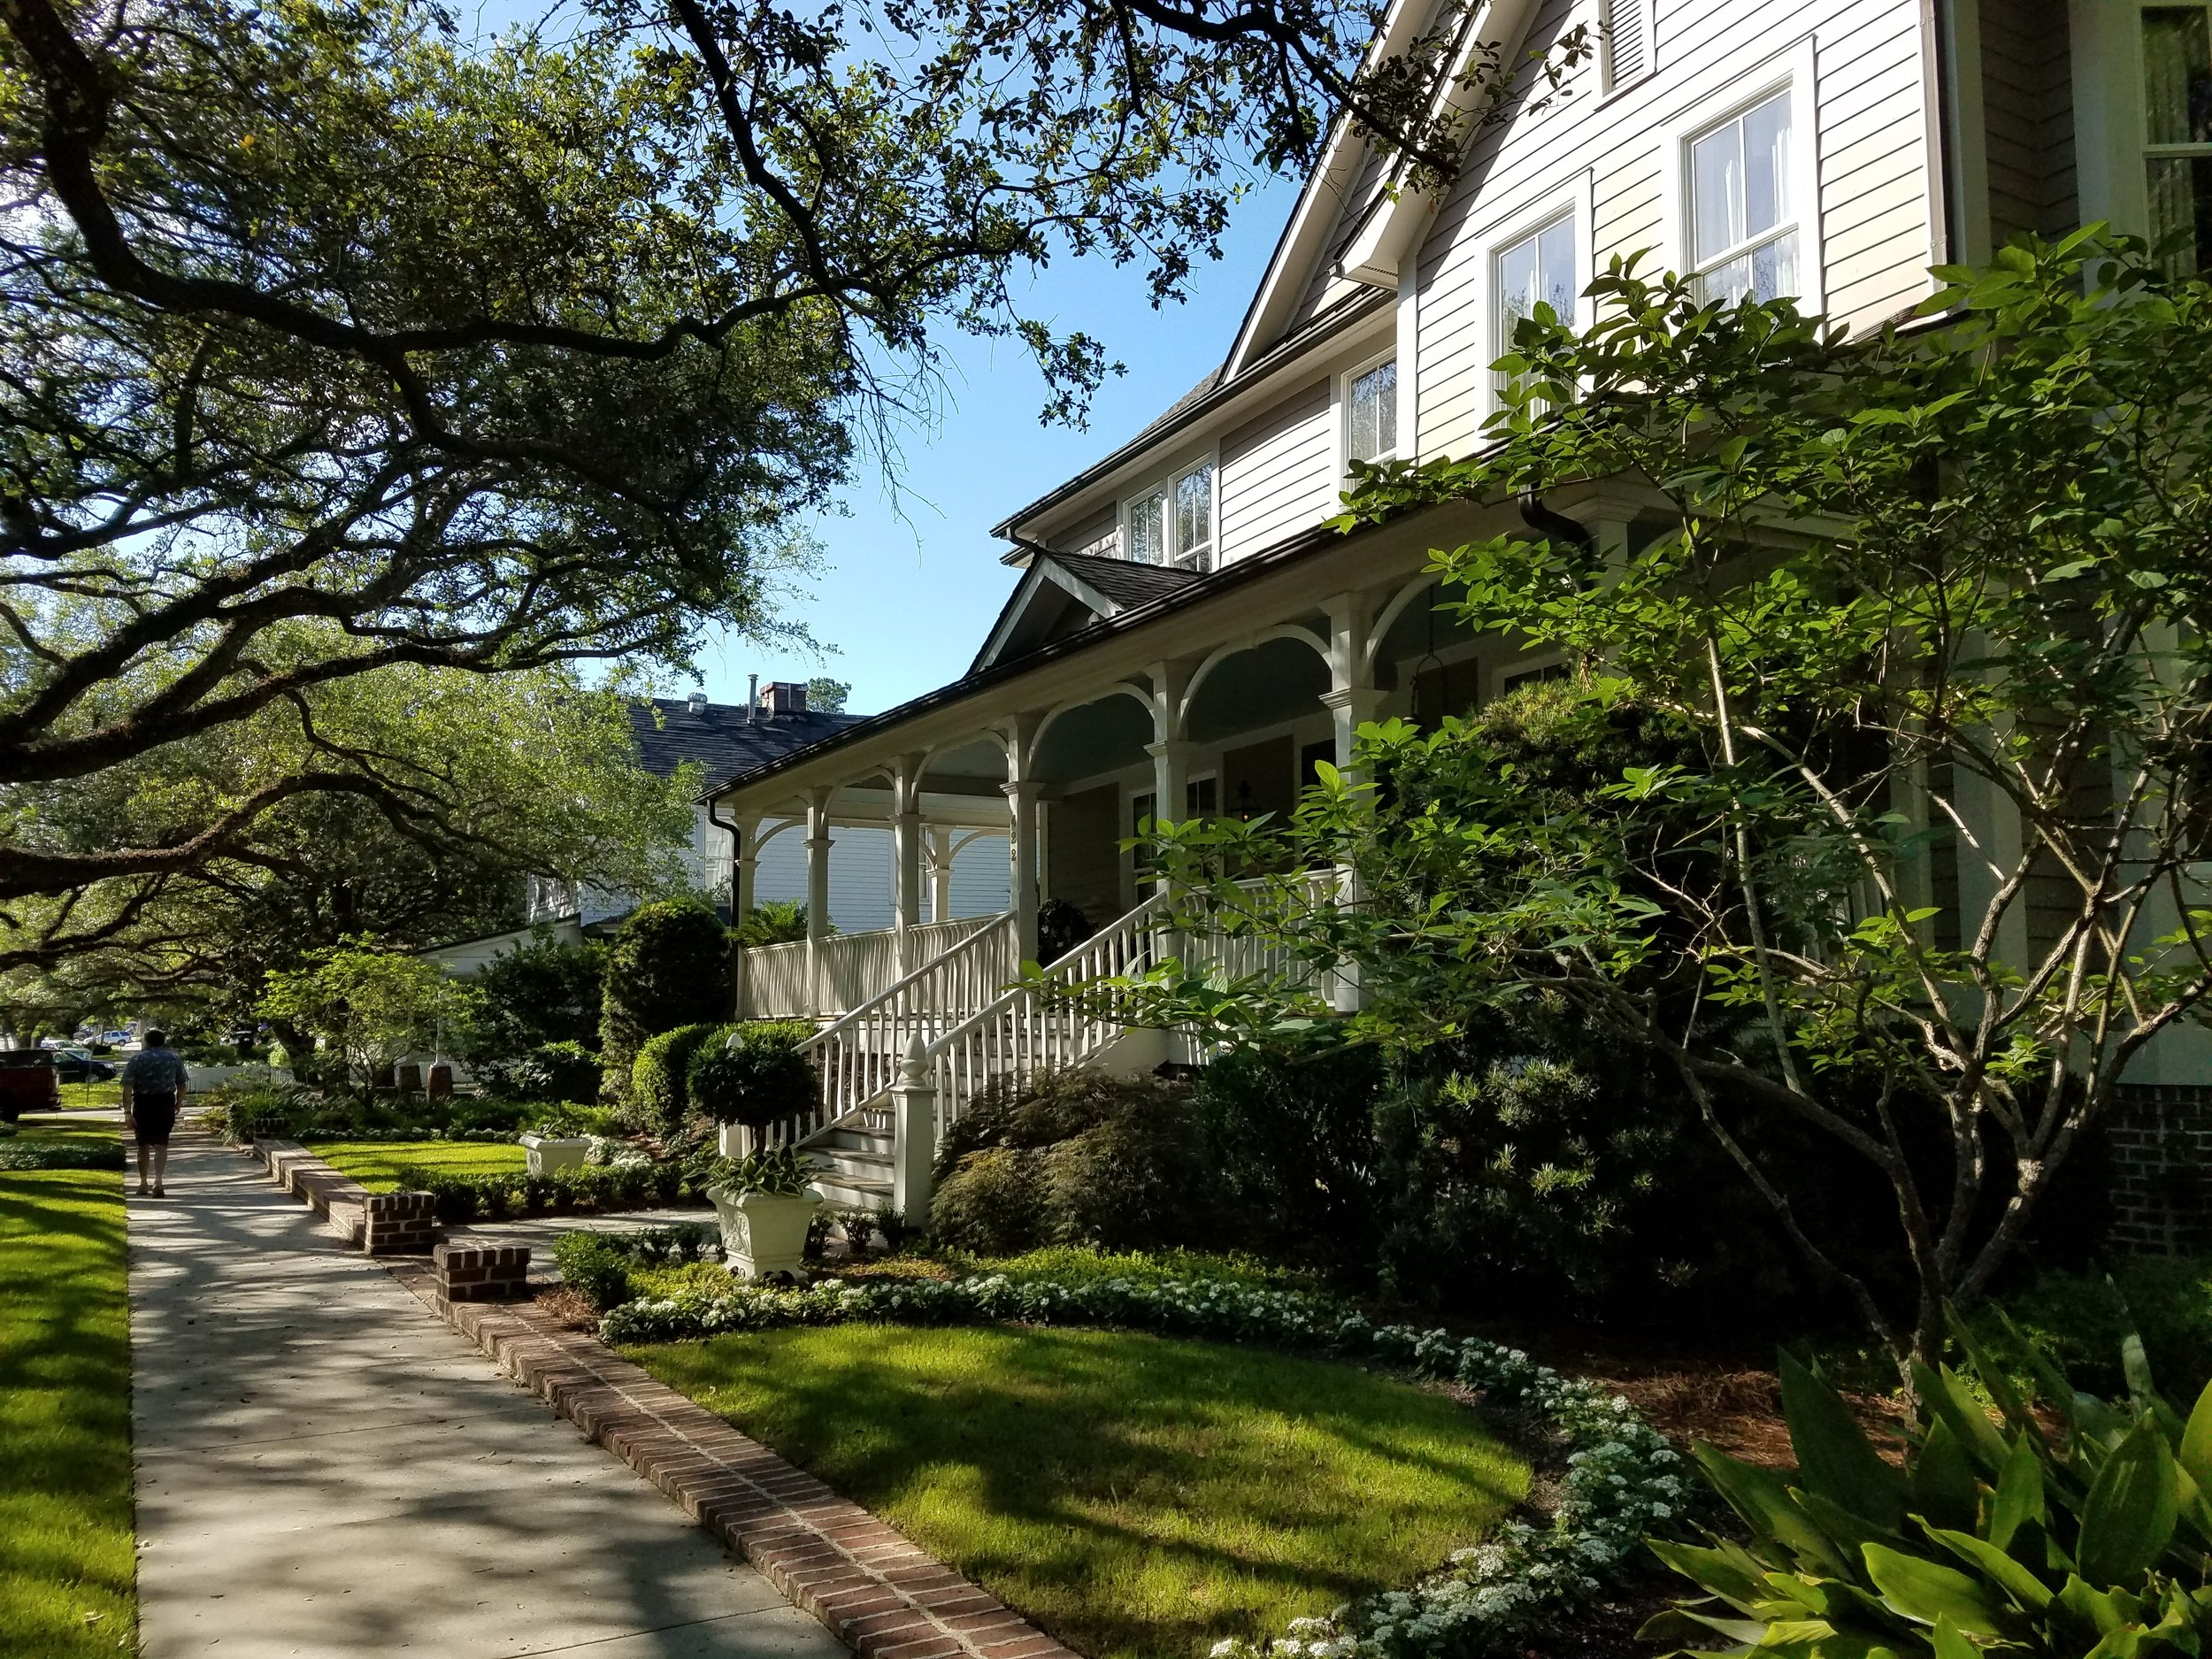 Charming tree lined streets in Georgetown, SC